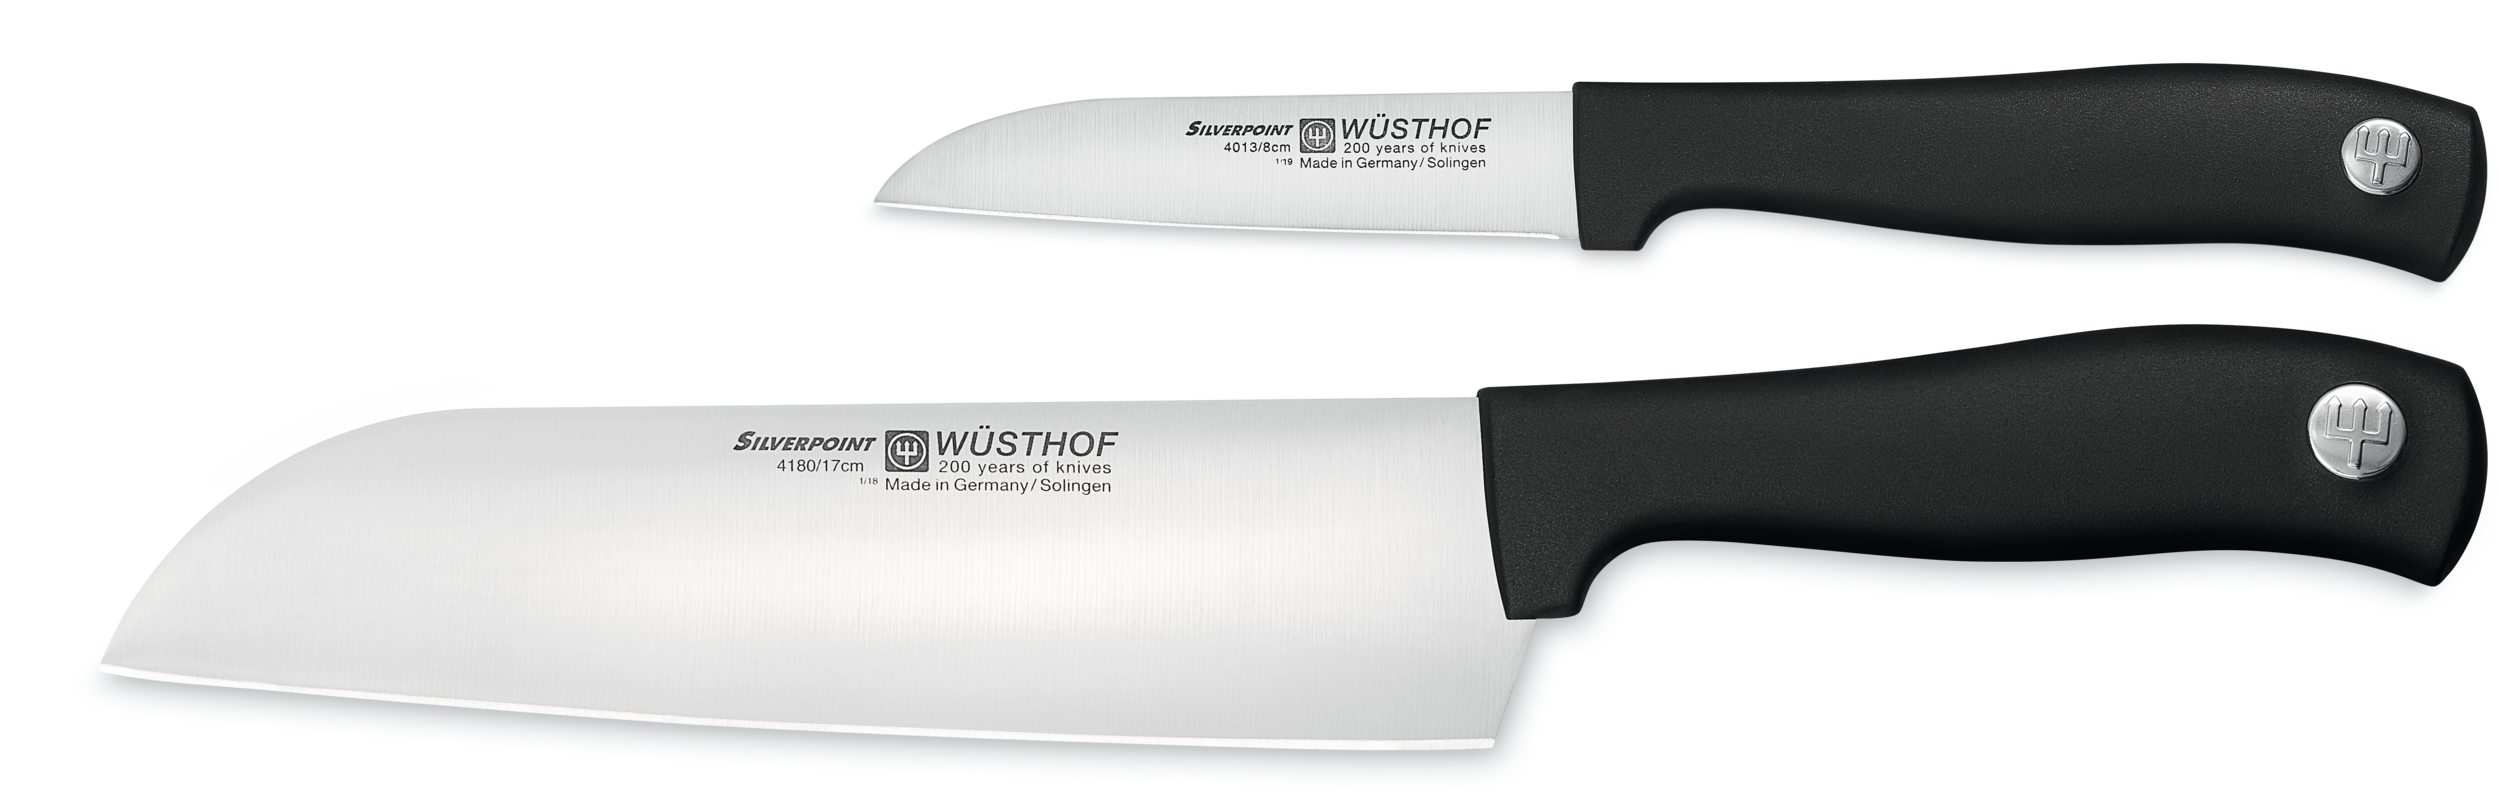 2 pc. knife set